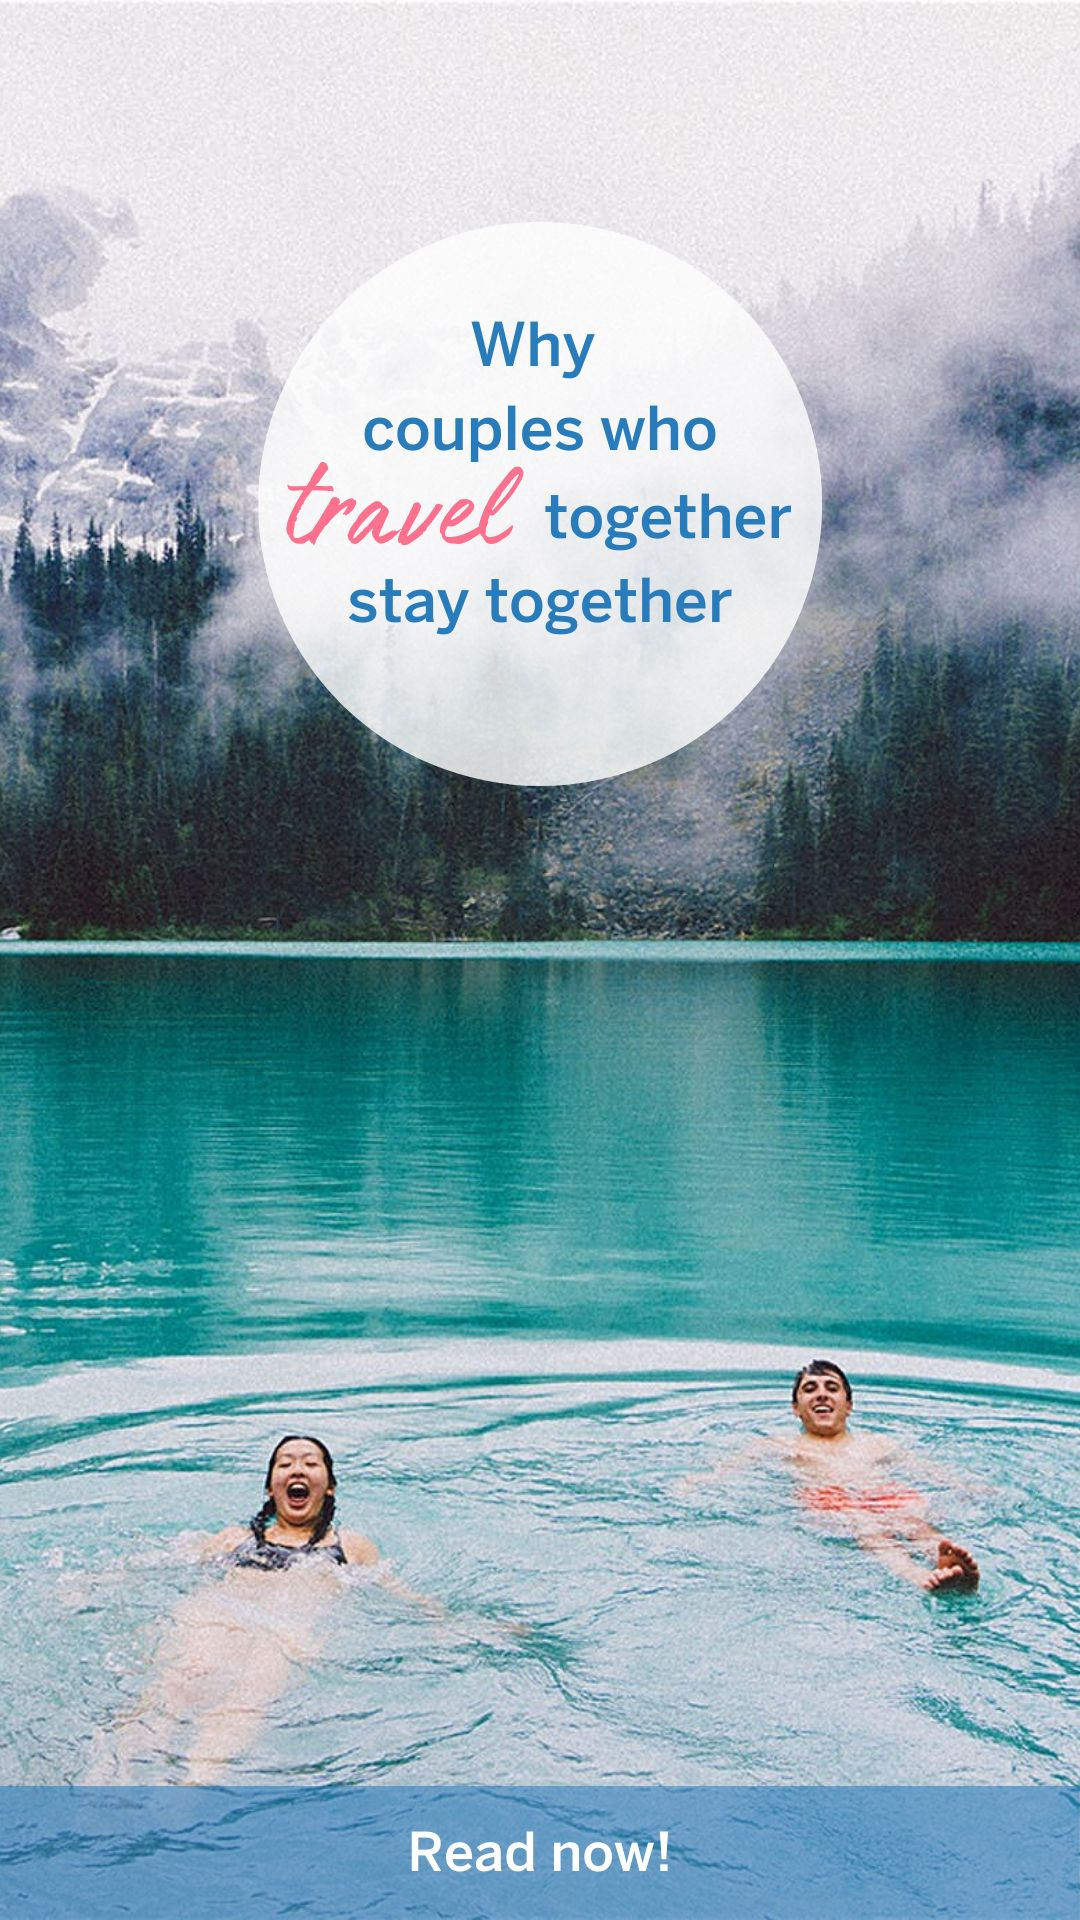 Why couples who travel together stay together